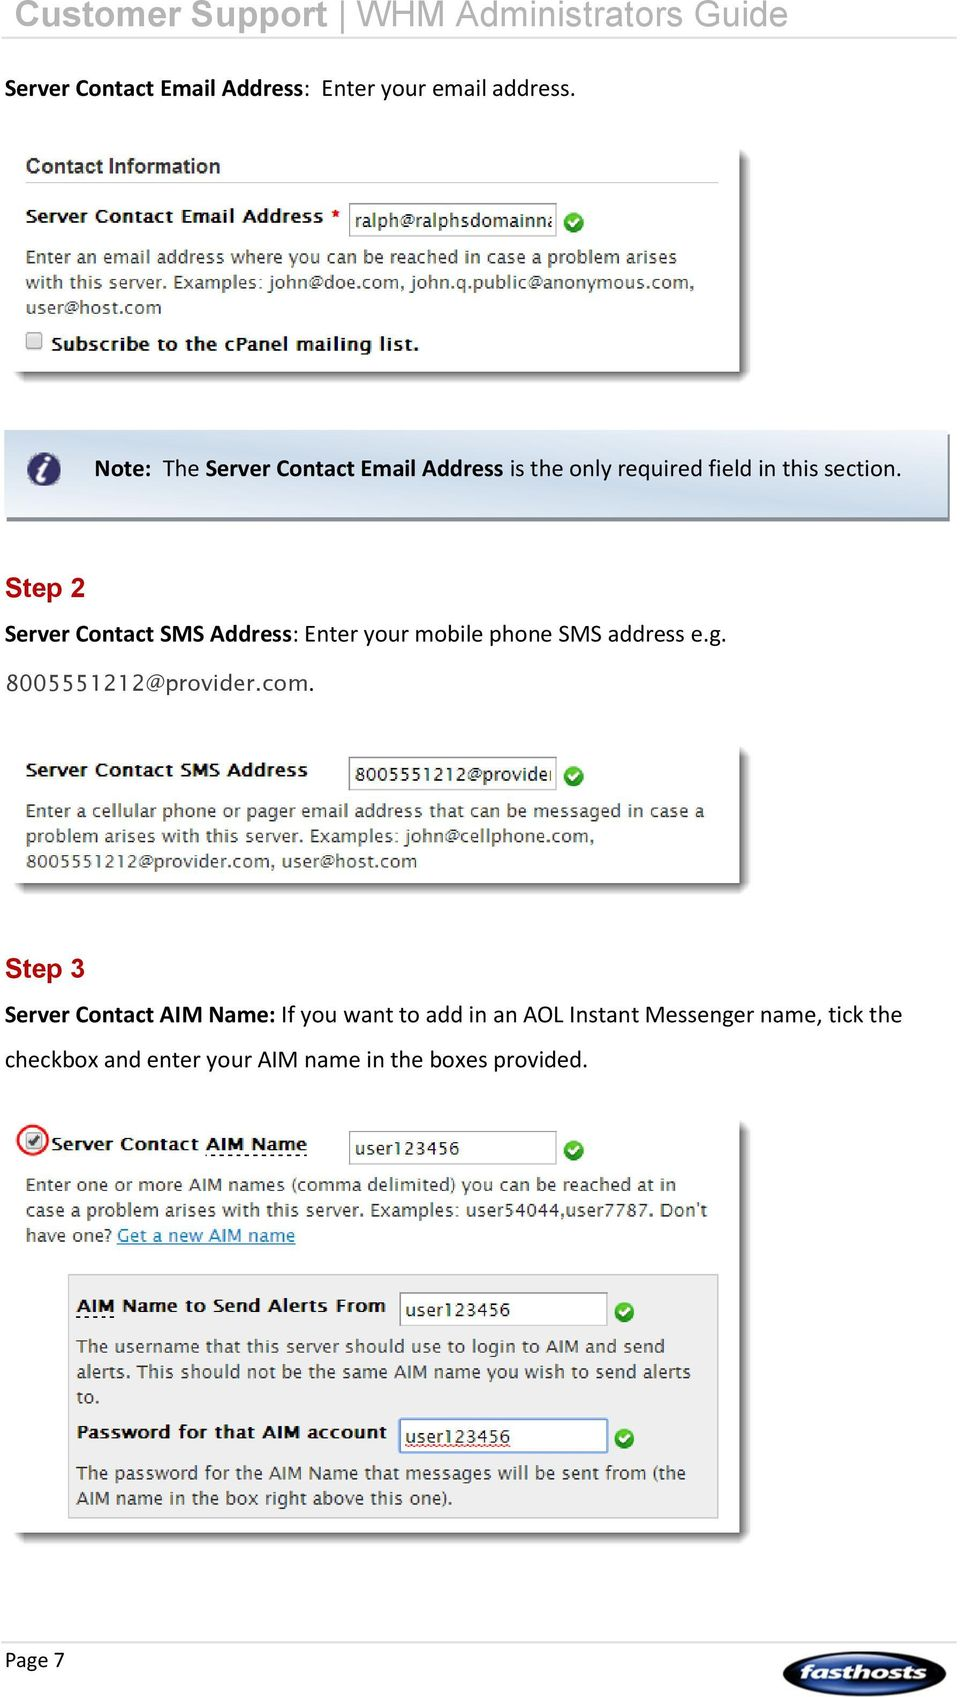 Step 2 Server Contact SMS Address: Enter your mobile phone SMS address e.g. 8005551212@provider.